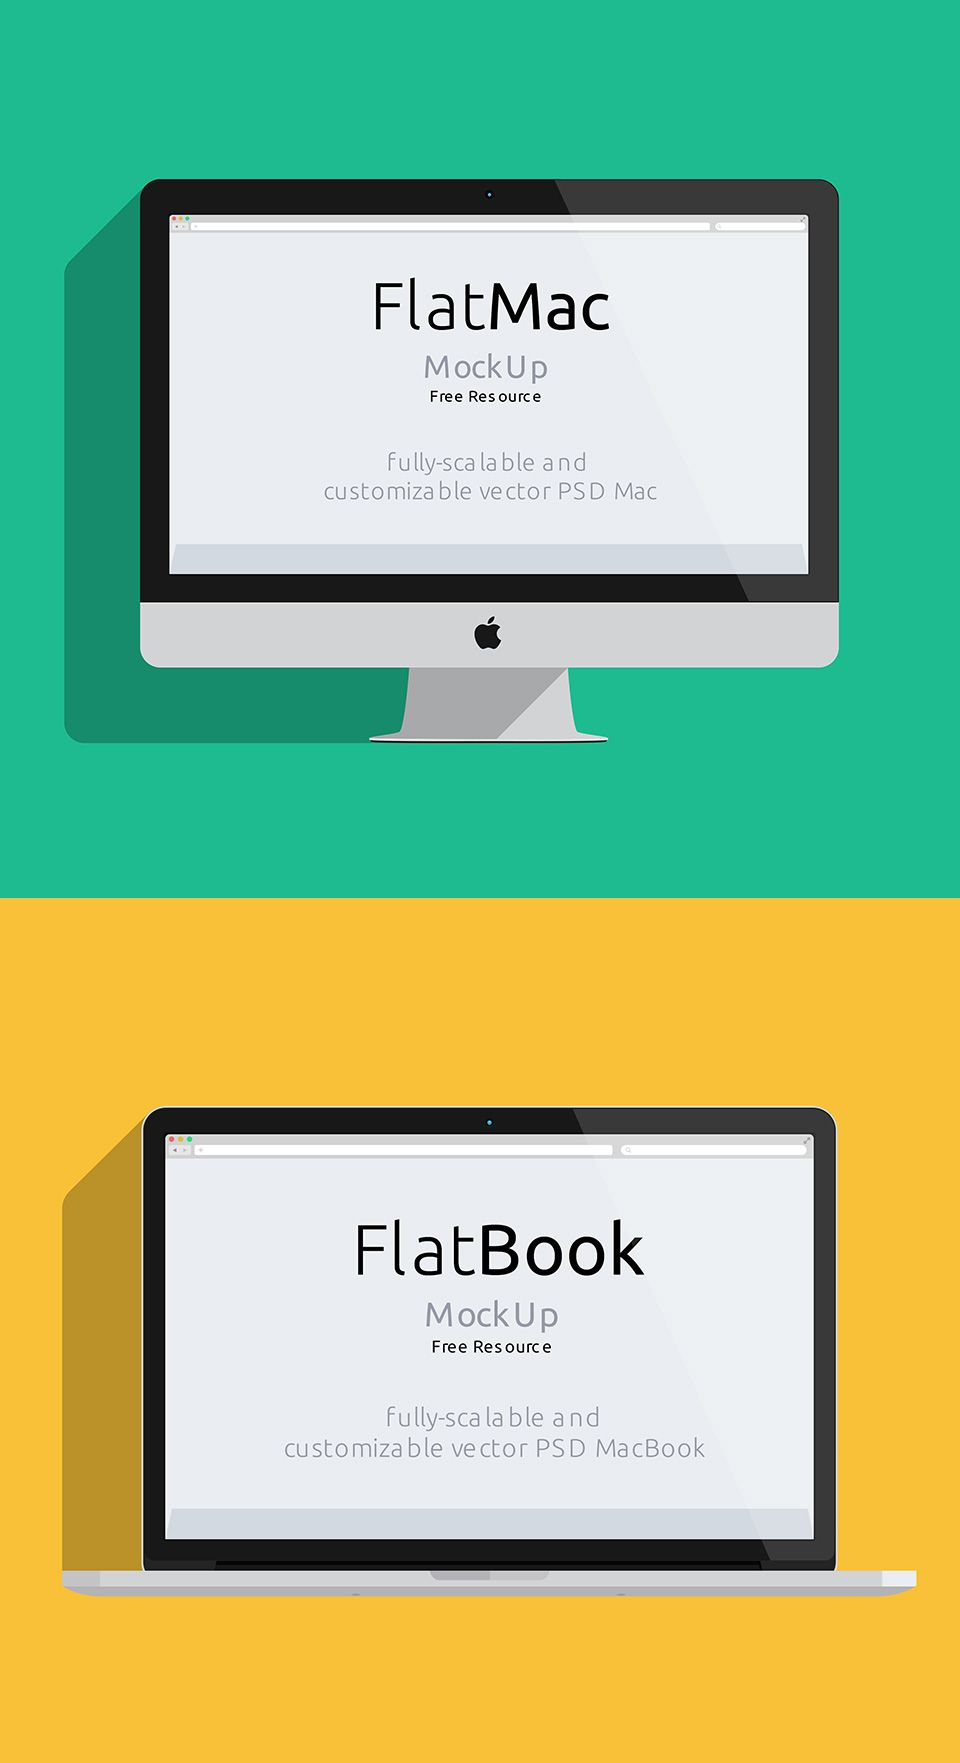 FlatMac and FlatBook | Freebie San - Get your design freebies for ...